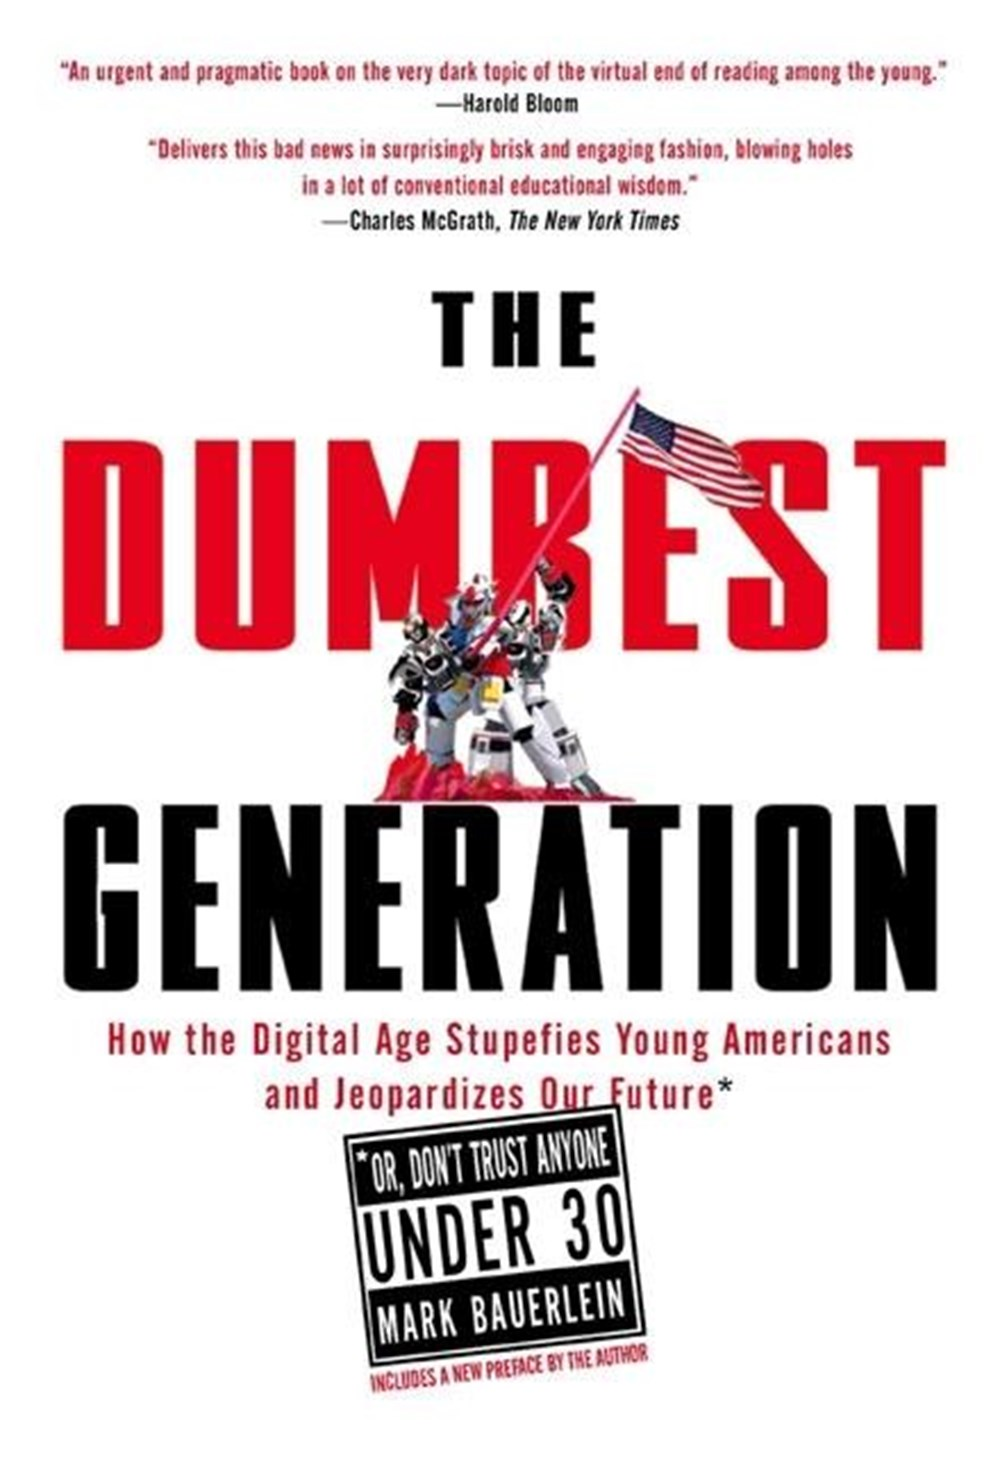 Dumbest Generation How the Digital Age Stupefies Young Americans and Jeopardizes Our Future(or, Don